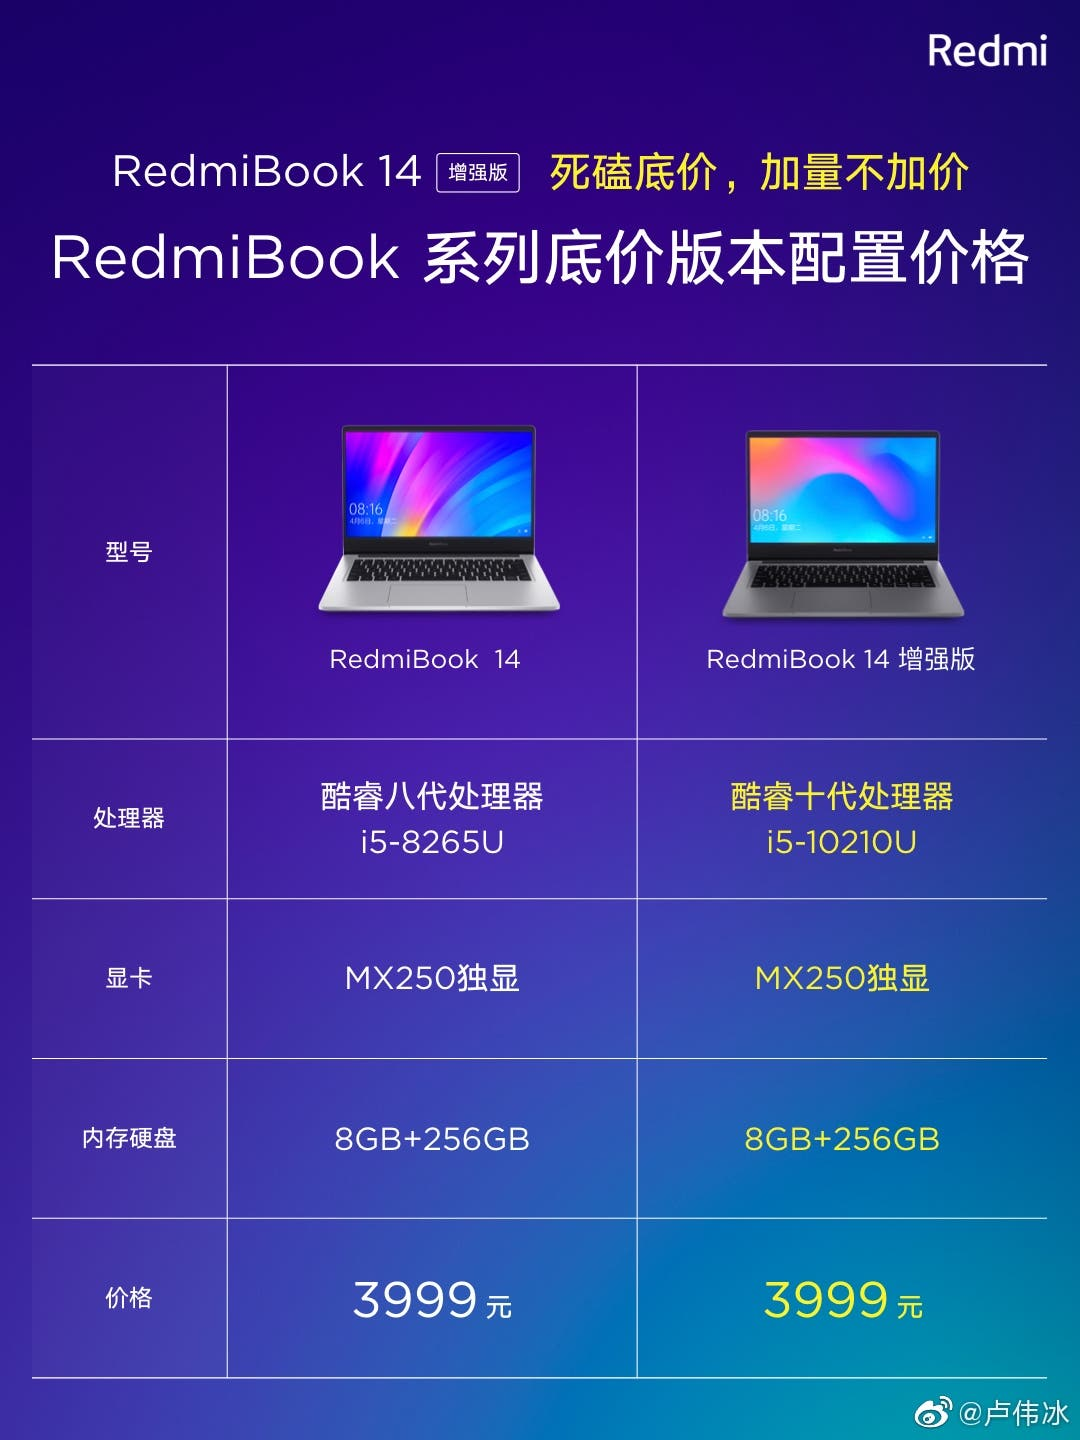 RedmiBook 14 enhanced version